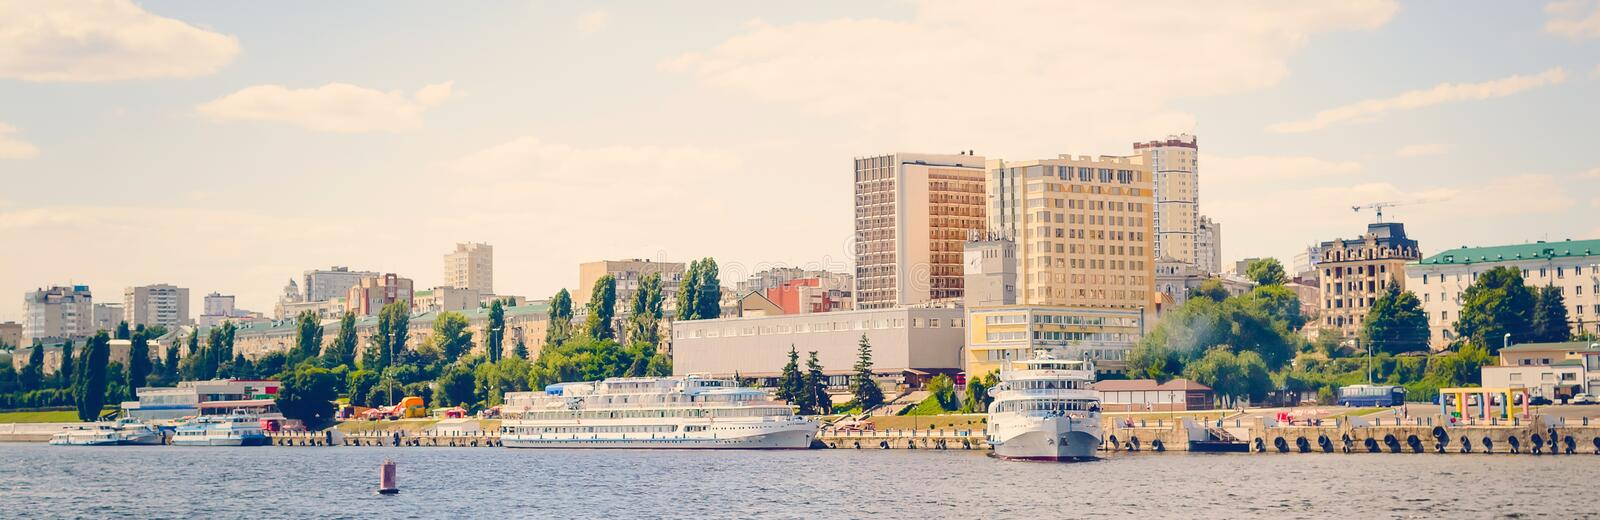 Panoramic cityscape and ships, view from the river side. Toning in the style of instagram stock photo